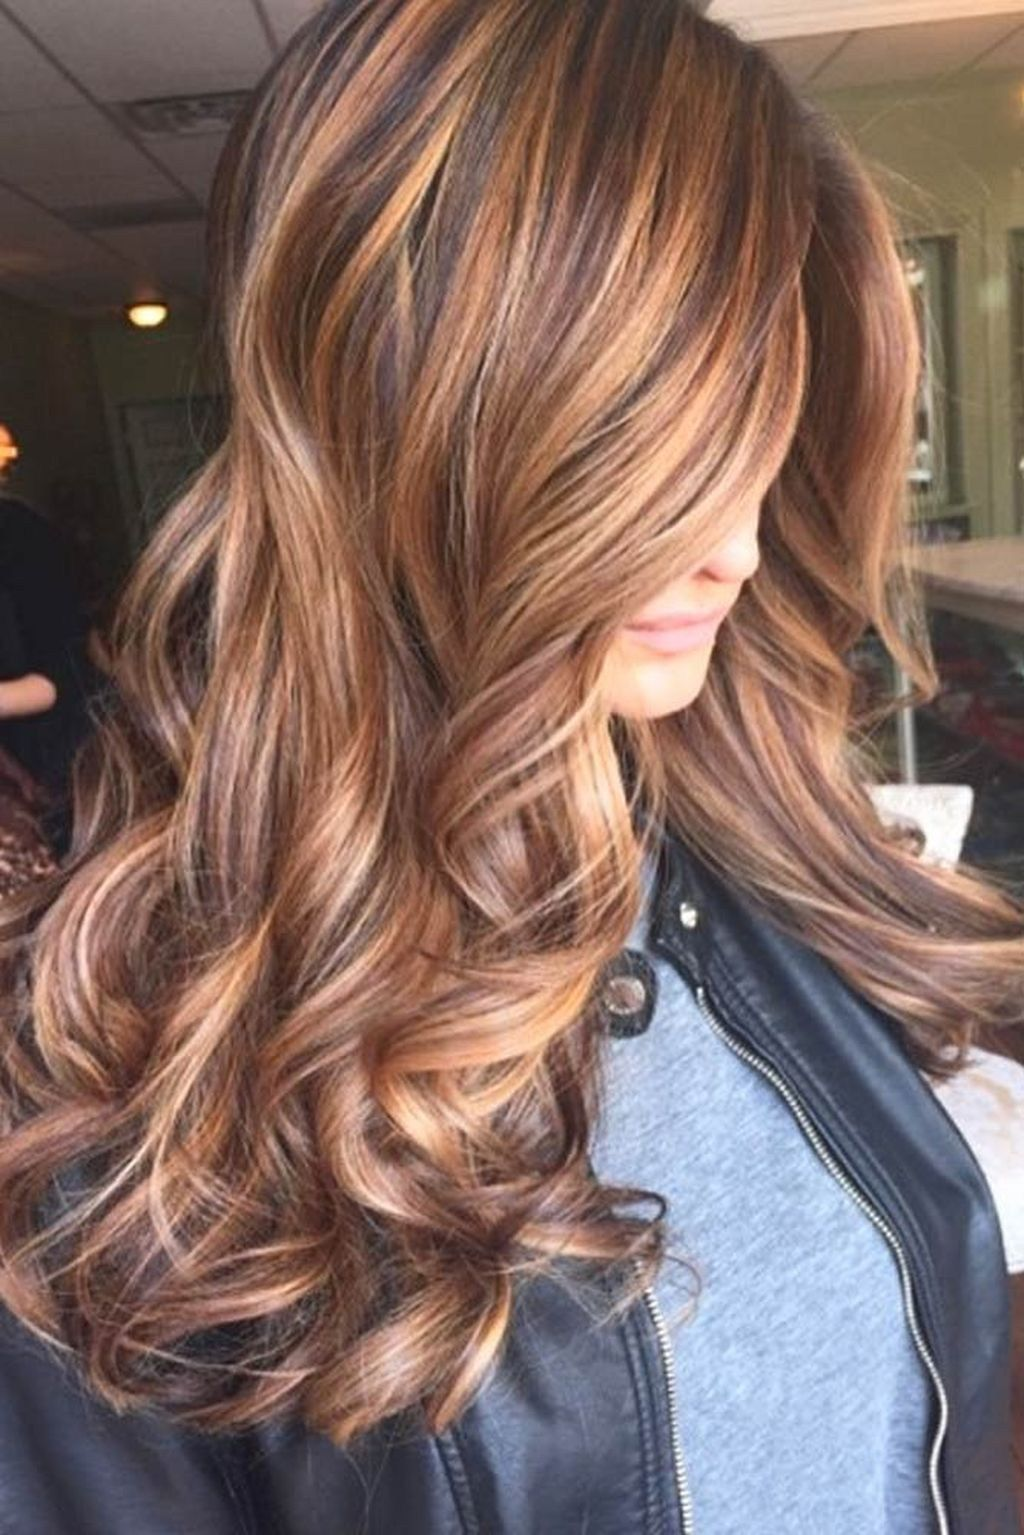 Stunning Fall Hair Color Ideas 2017 Trends 21 Hair Coloring 21st